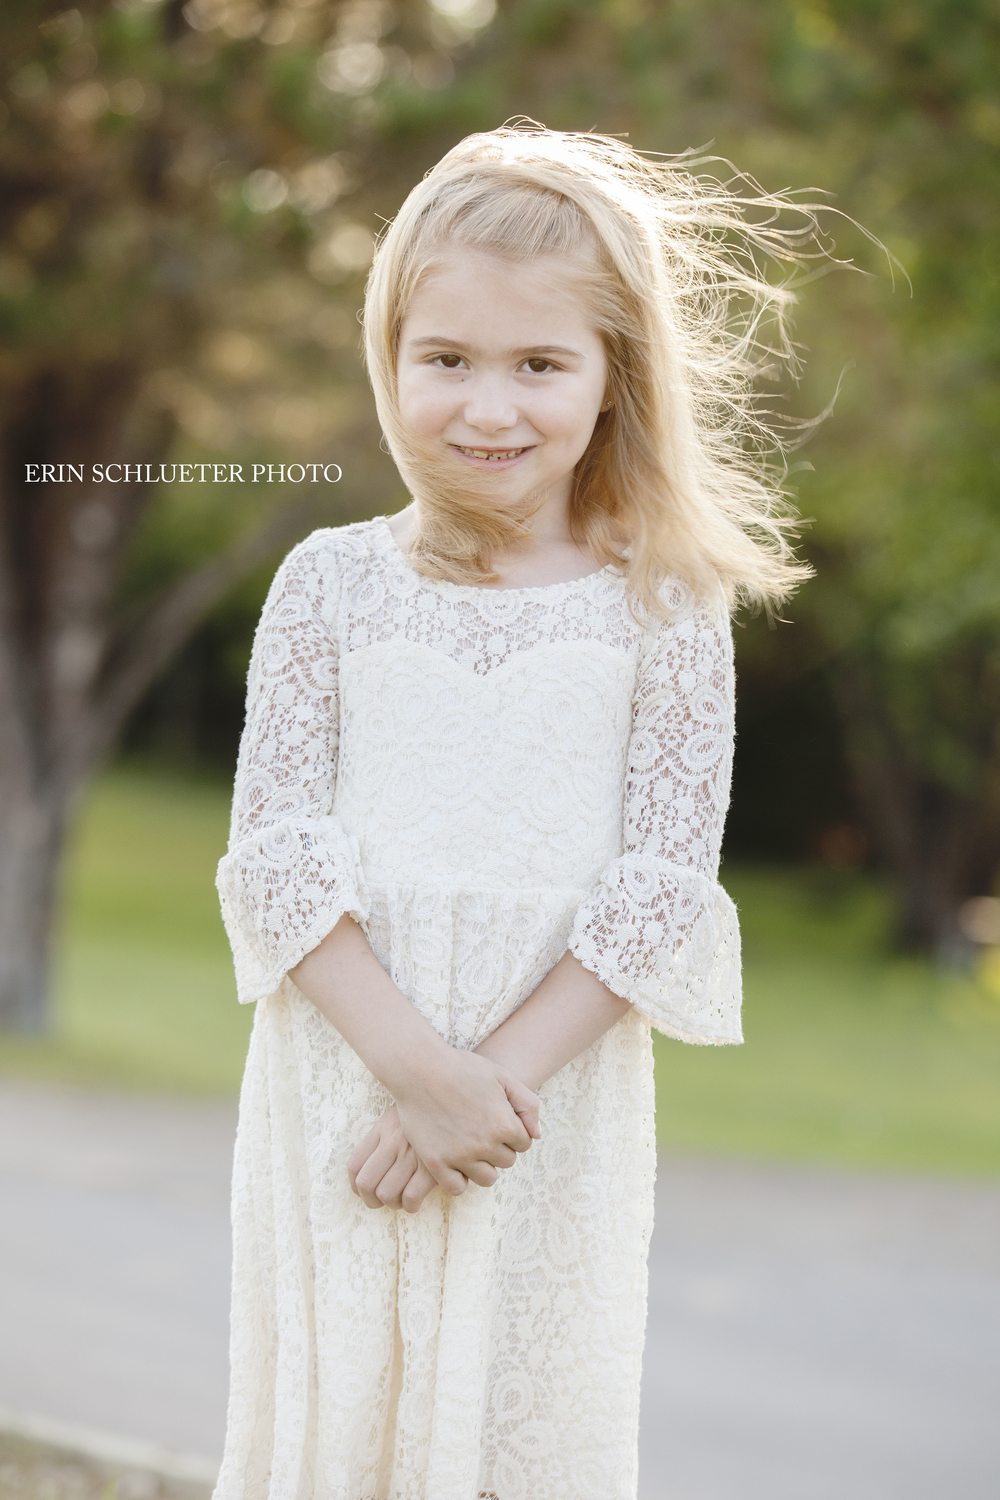 This cute spunky six year old and I had a so much fun during our photo session.